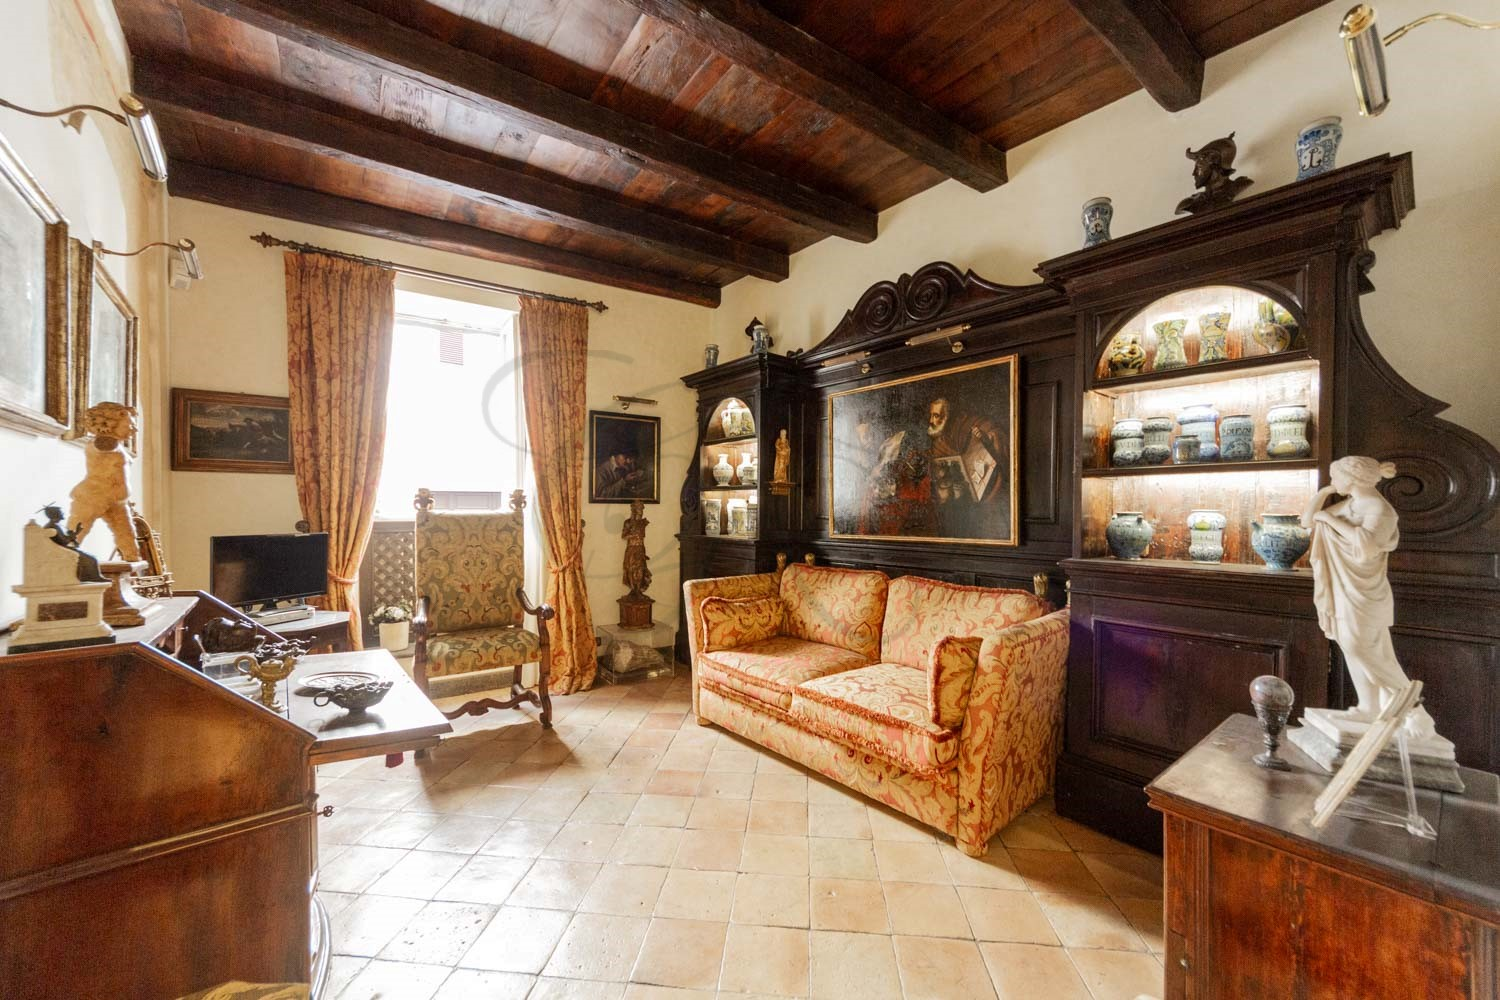 Luxury Apartment Rome Center: Exclusive Real Estate for Sale